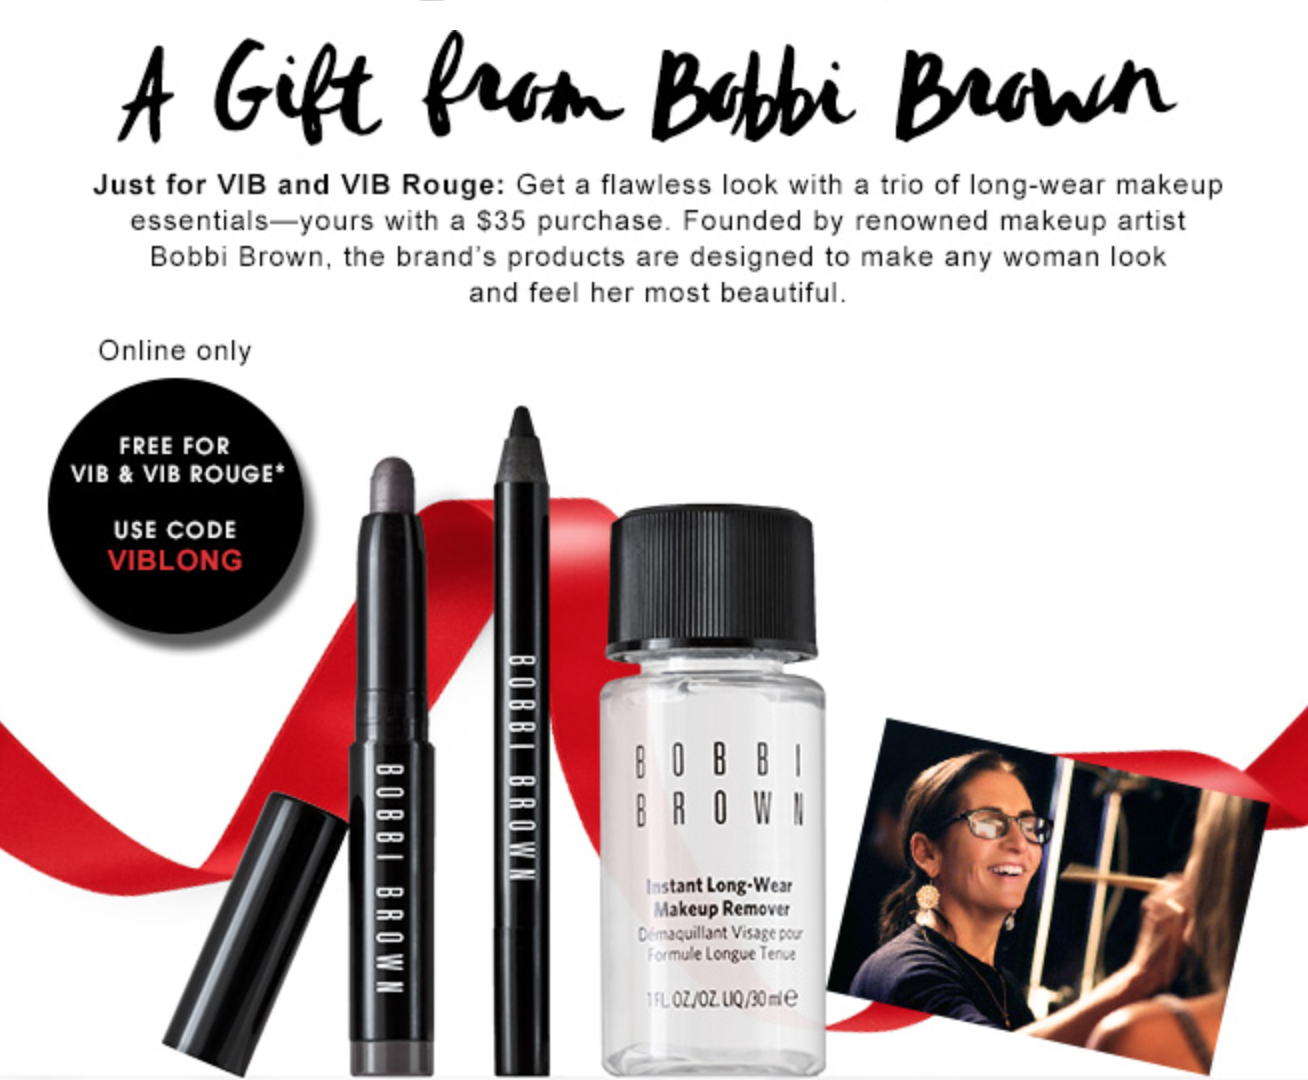 Sephora GWP from Bobbi Brown - VIB & VIB Rouge Only